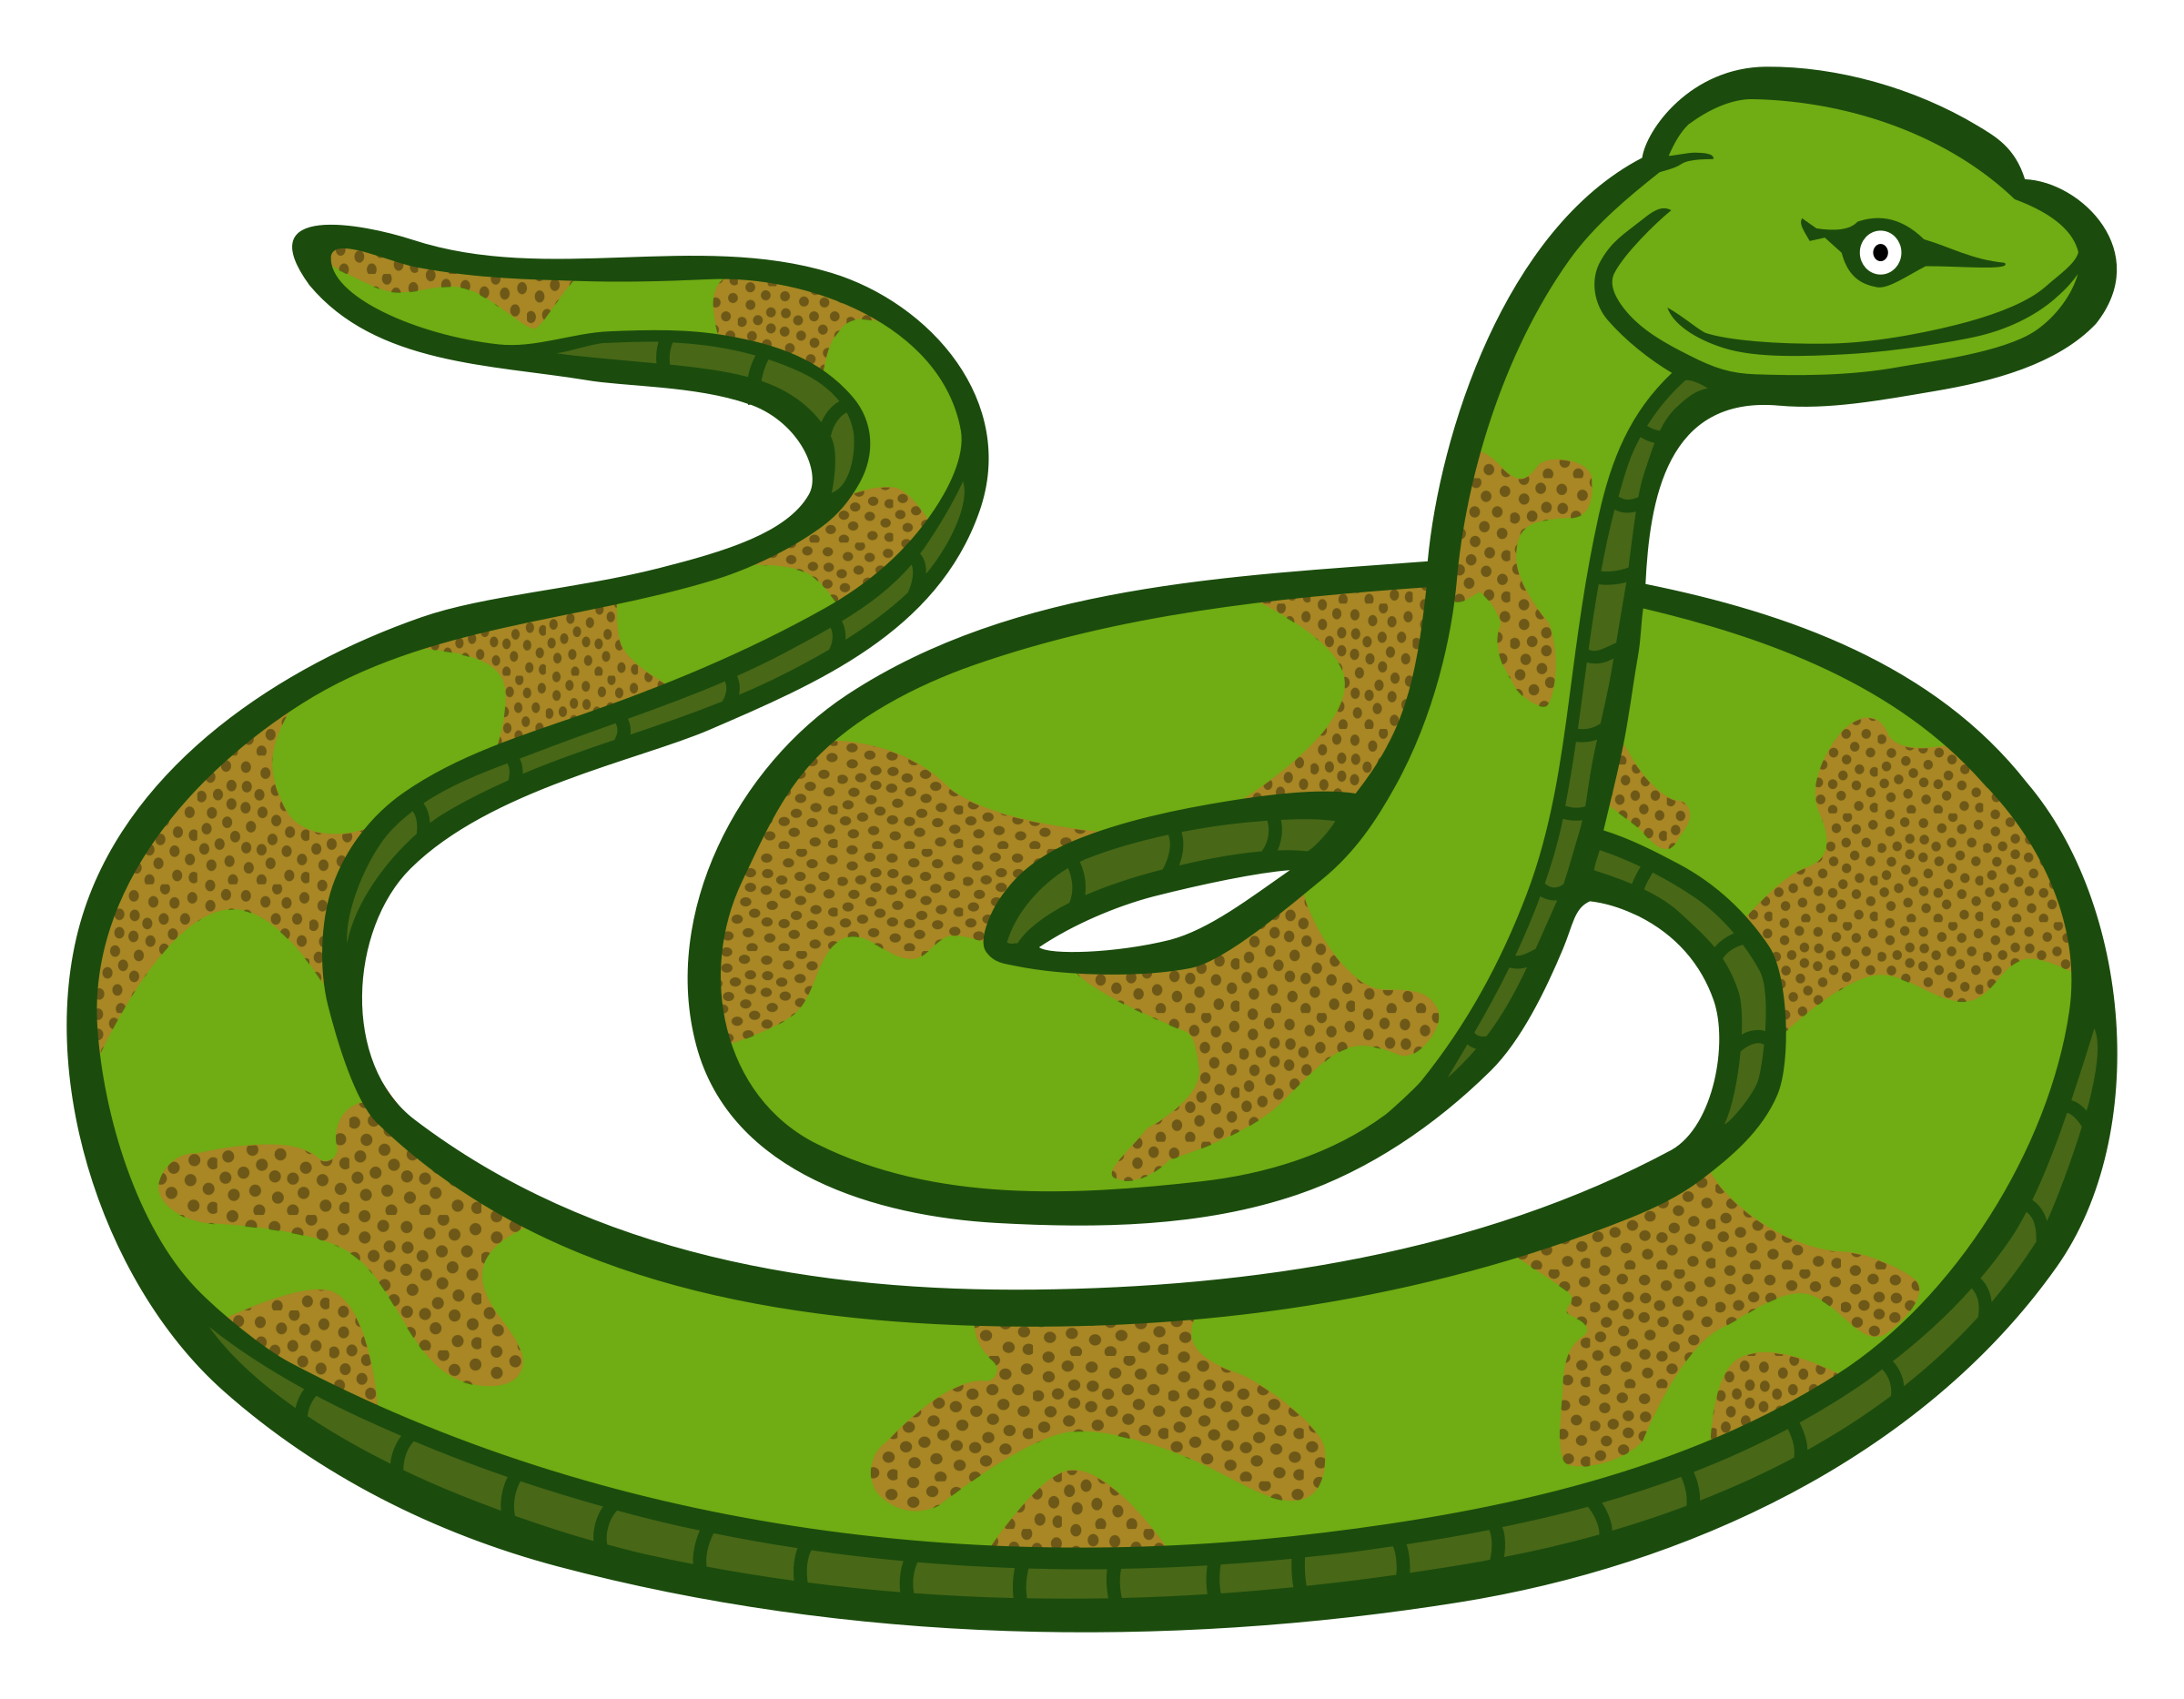 clipart snake coloured rh openclipart org clipart snakes and ladders clipart snakes and ladders